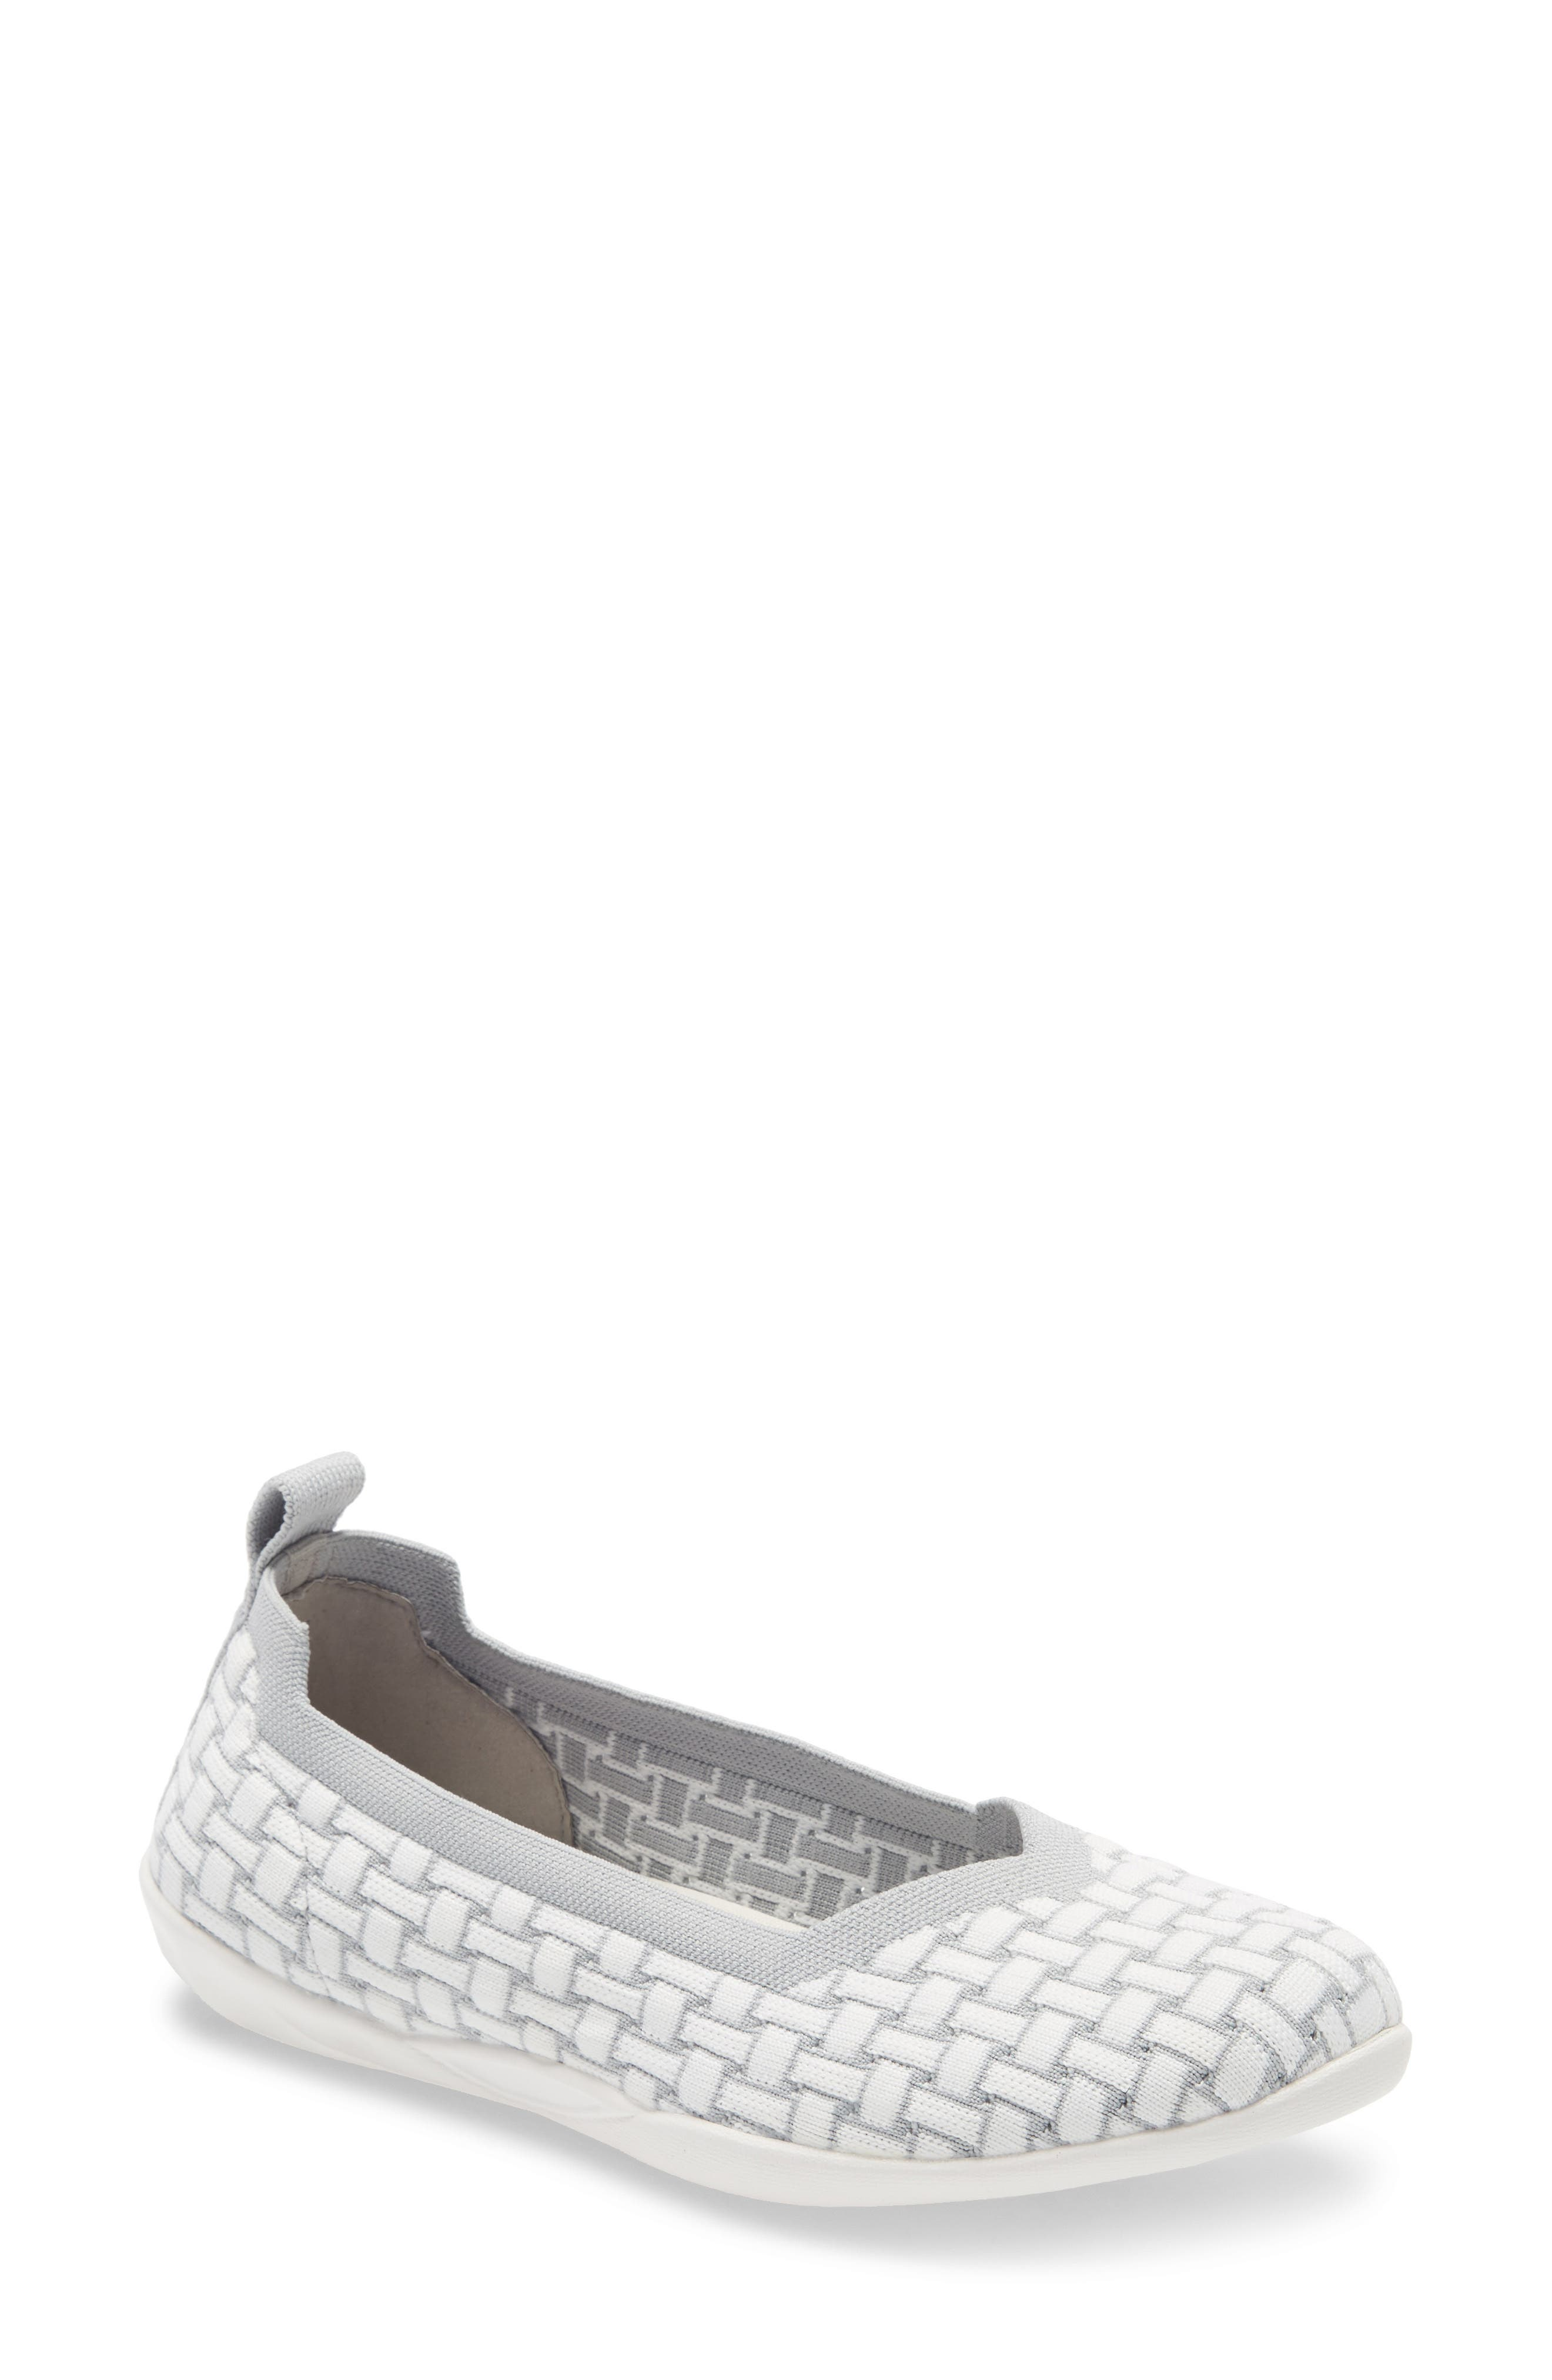 A stretchy woven upper fits like a dream on a lightweight, flexible flat with a cushy memory-foam footbed. Style Name: Bernie Mev. Catwalk Flat (Women). Style Number: 1009648. Available in stores.